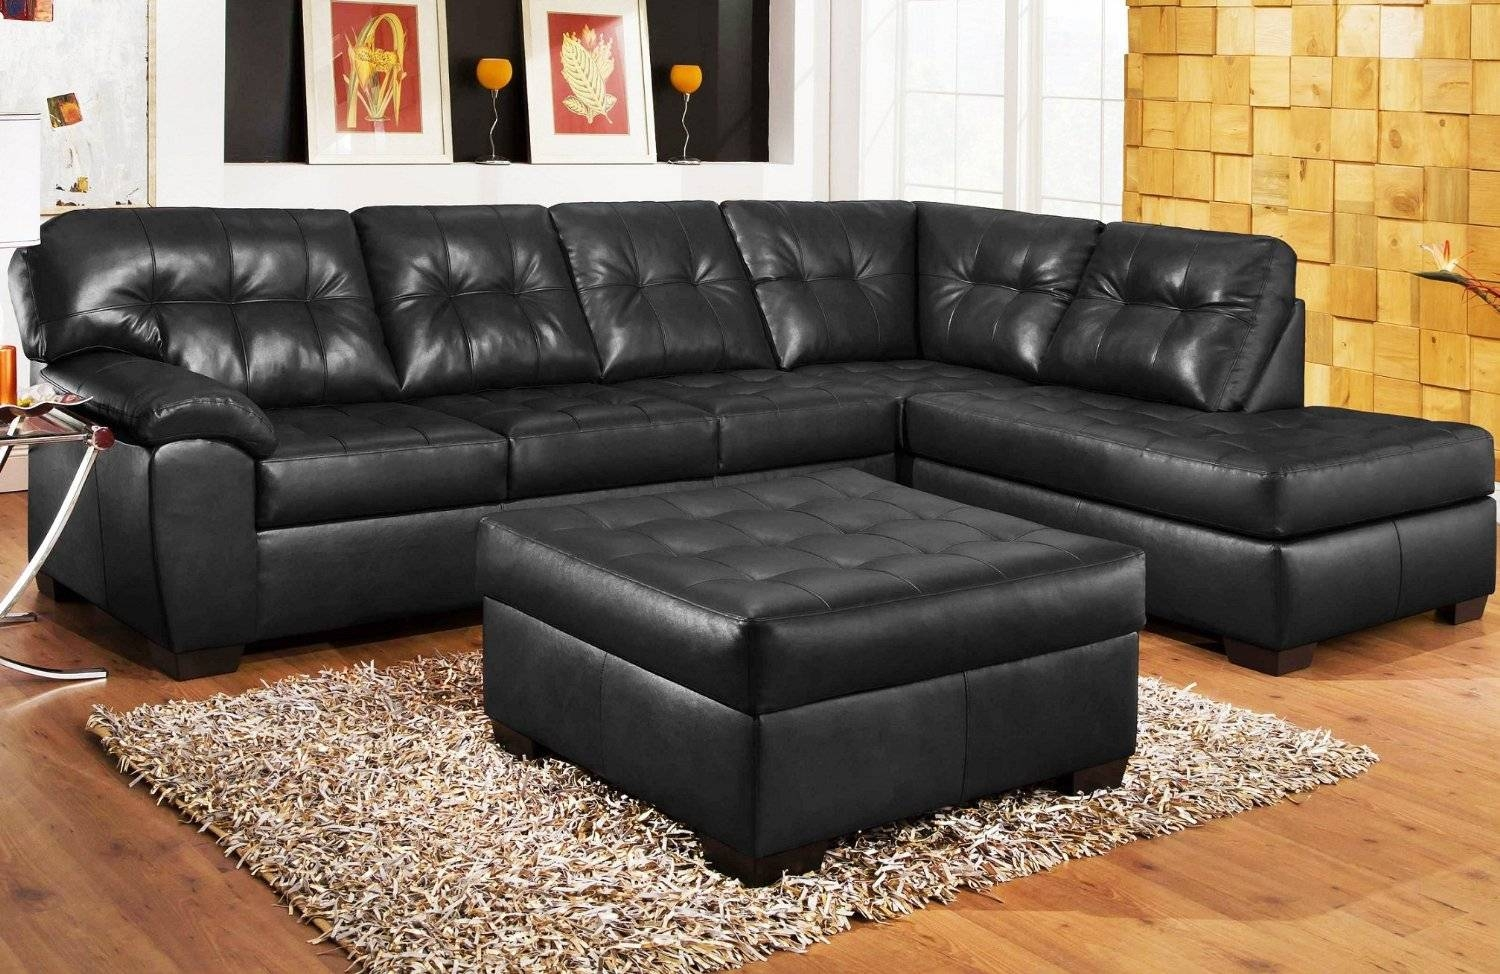 Sofas Center : Black Leather Sectional Sofa With Chaise Dobson with regard to Dobson Sectional Sofa (Image 18 of 30)